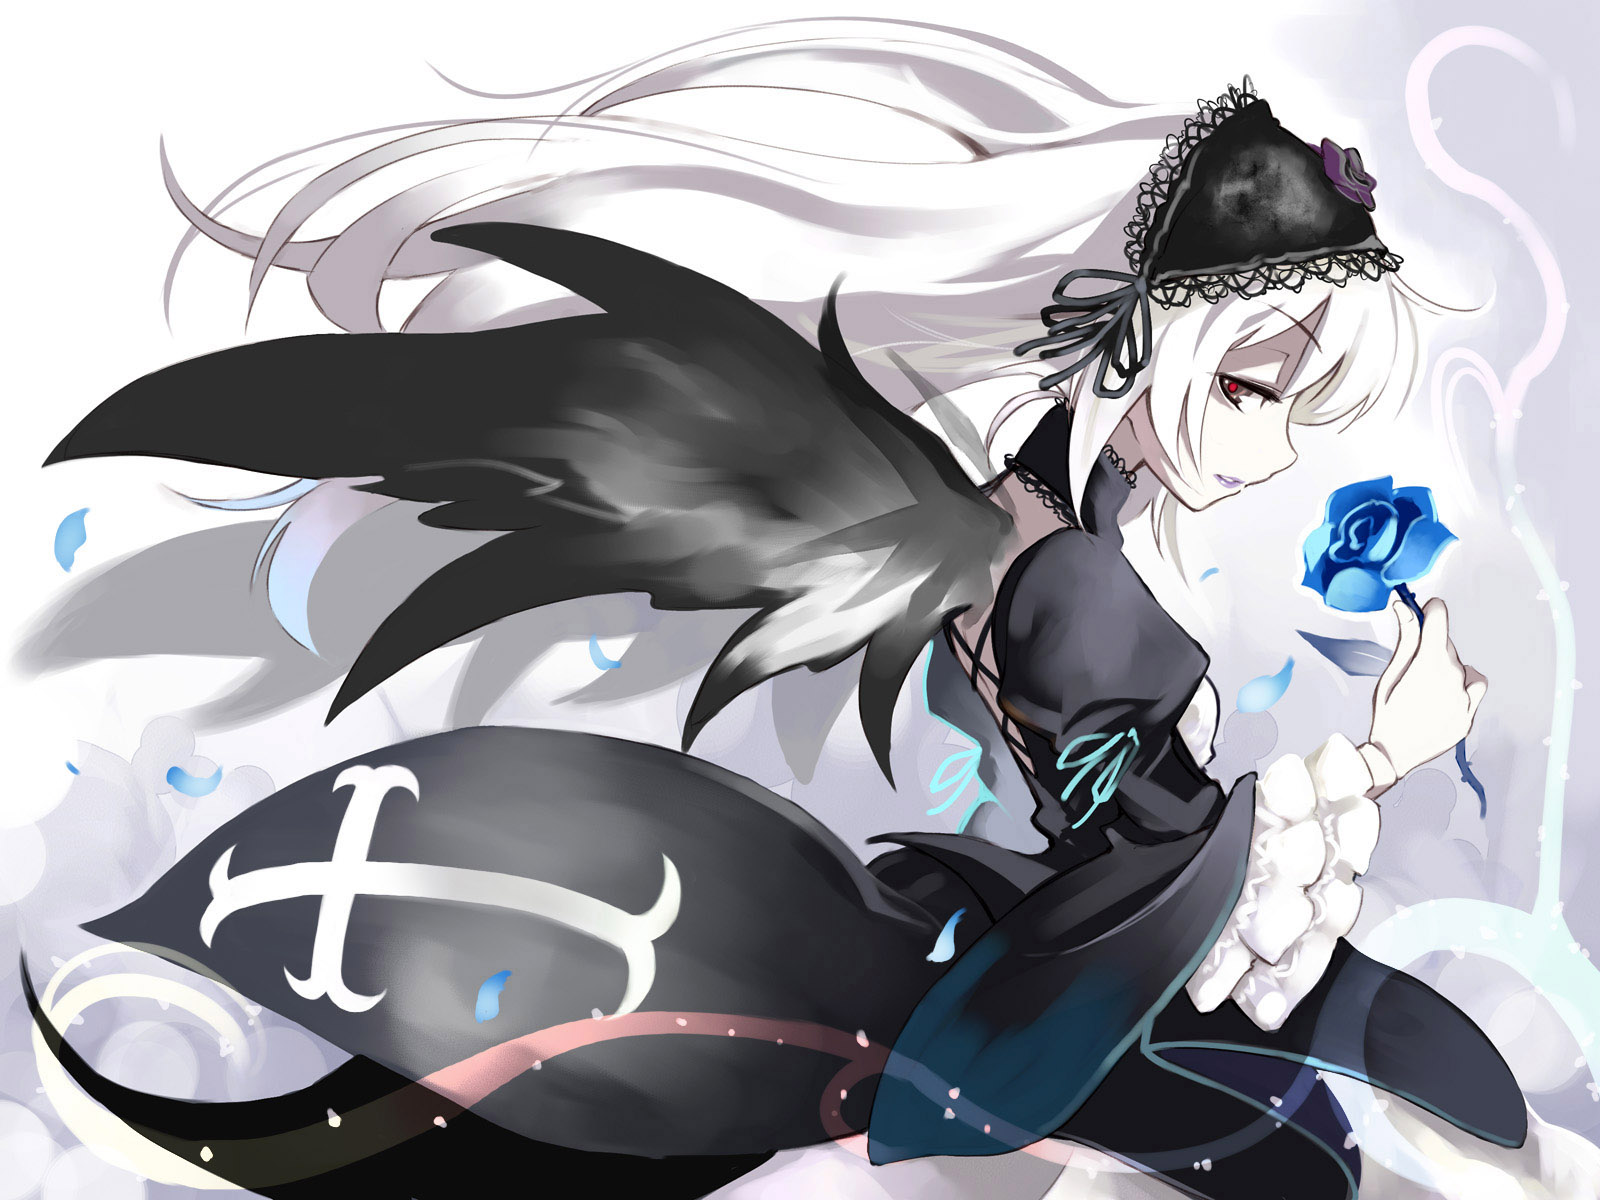 Konachan.com - 54793 goth-loli gothic long_hair rozen_maiden suigintou white_hair wings